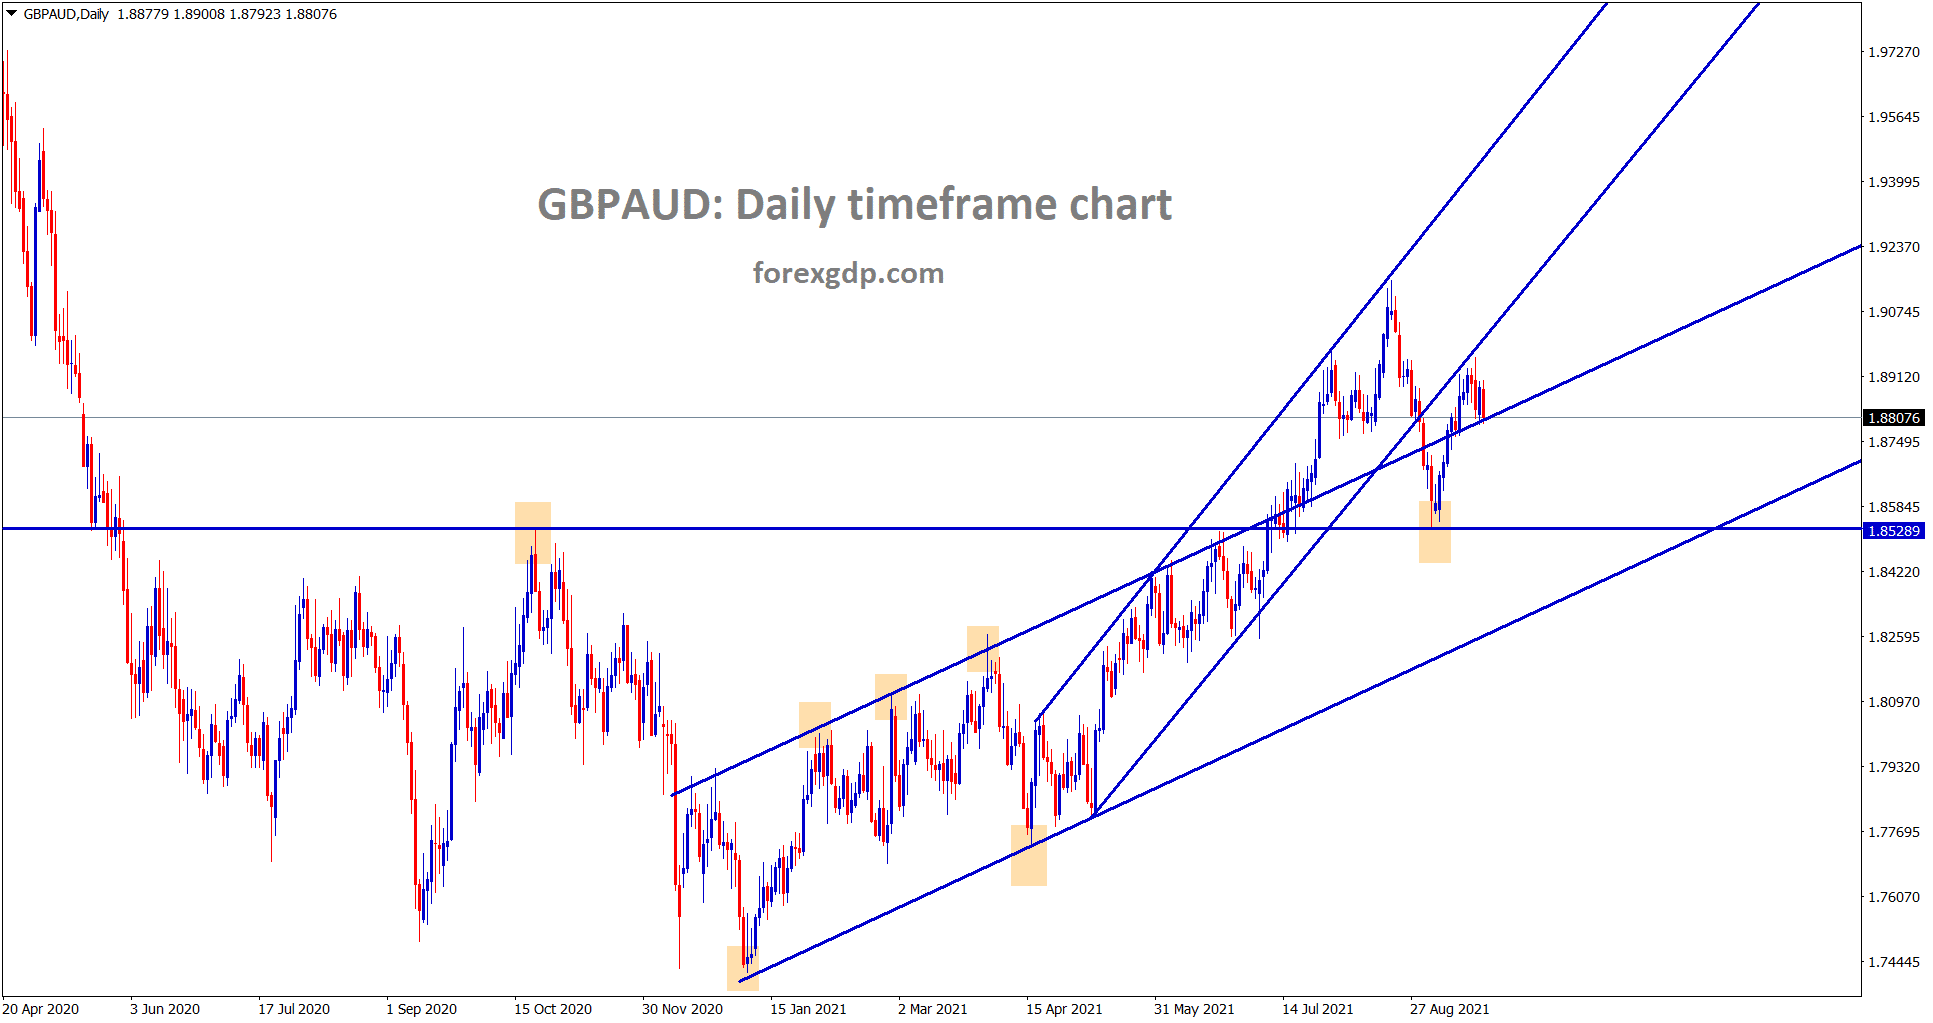 GBPAUD is consolidating at the retest zone of the uptrend lines